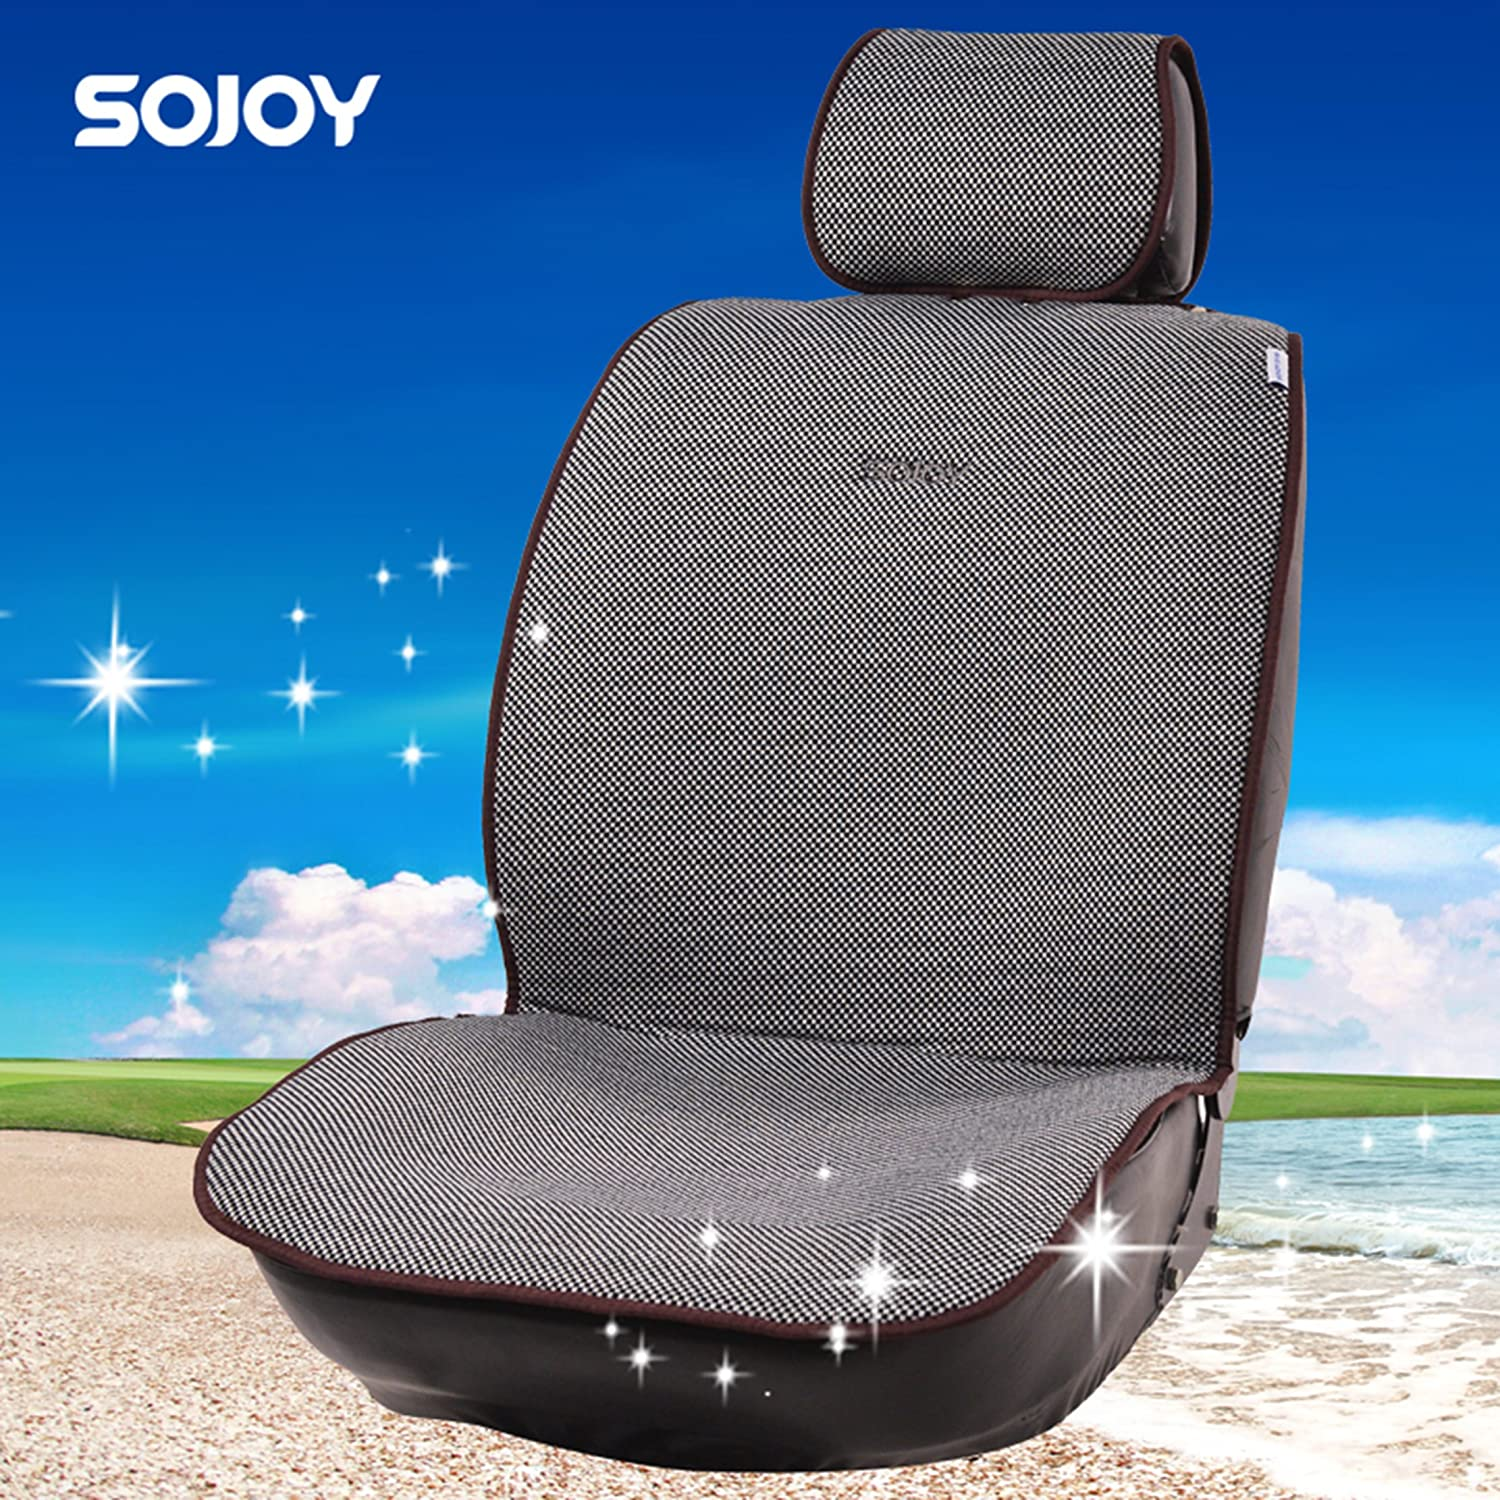 Grey Microfiber Seat Protector with Quick-Dry Car seat Protection for All Workouts All-Weather No-Slip Technology Sojoy IsoTowel Car Seat Cover